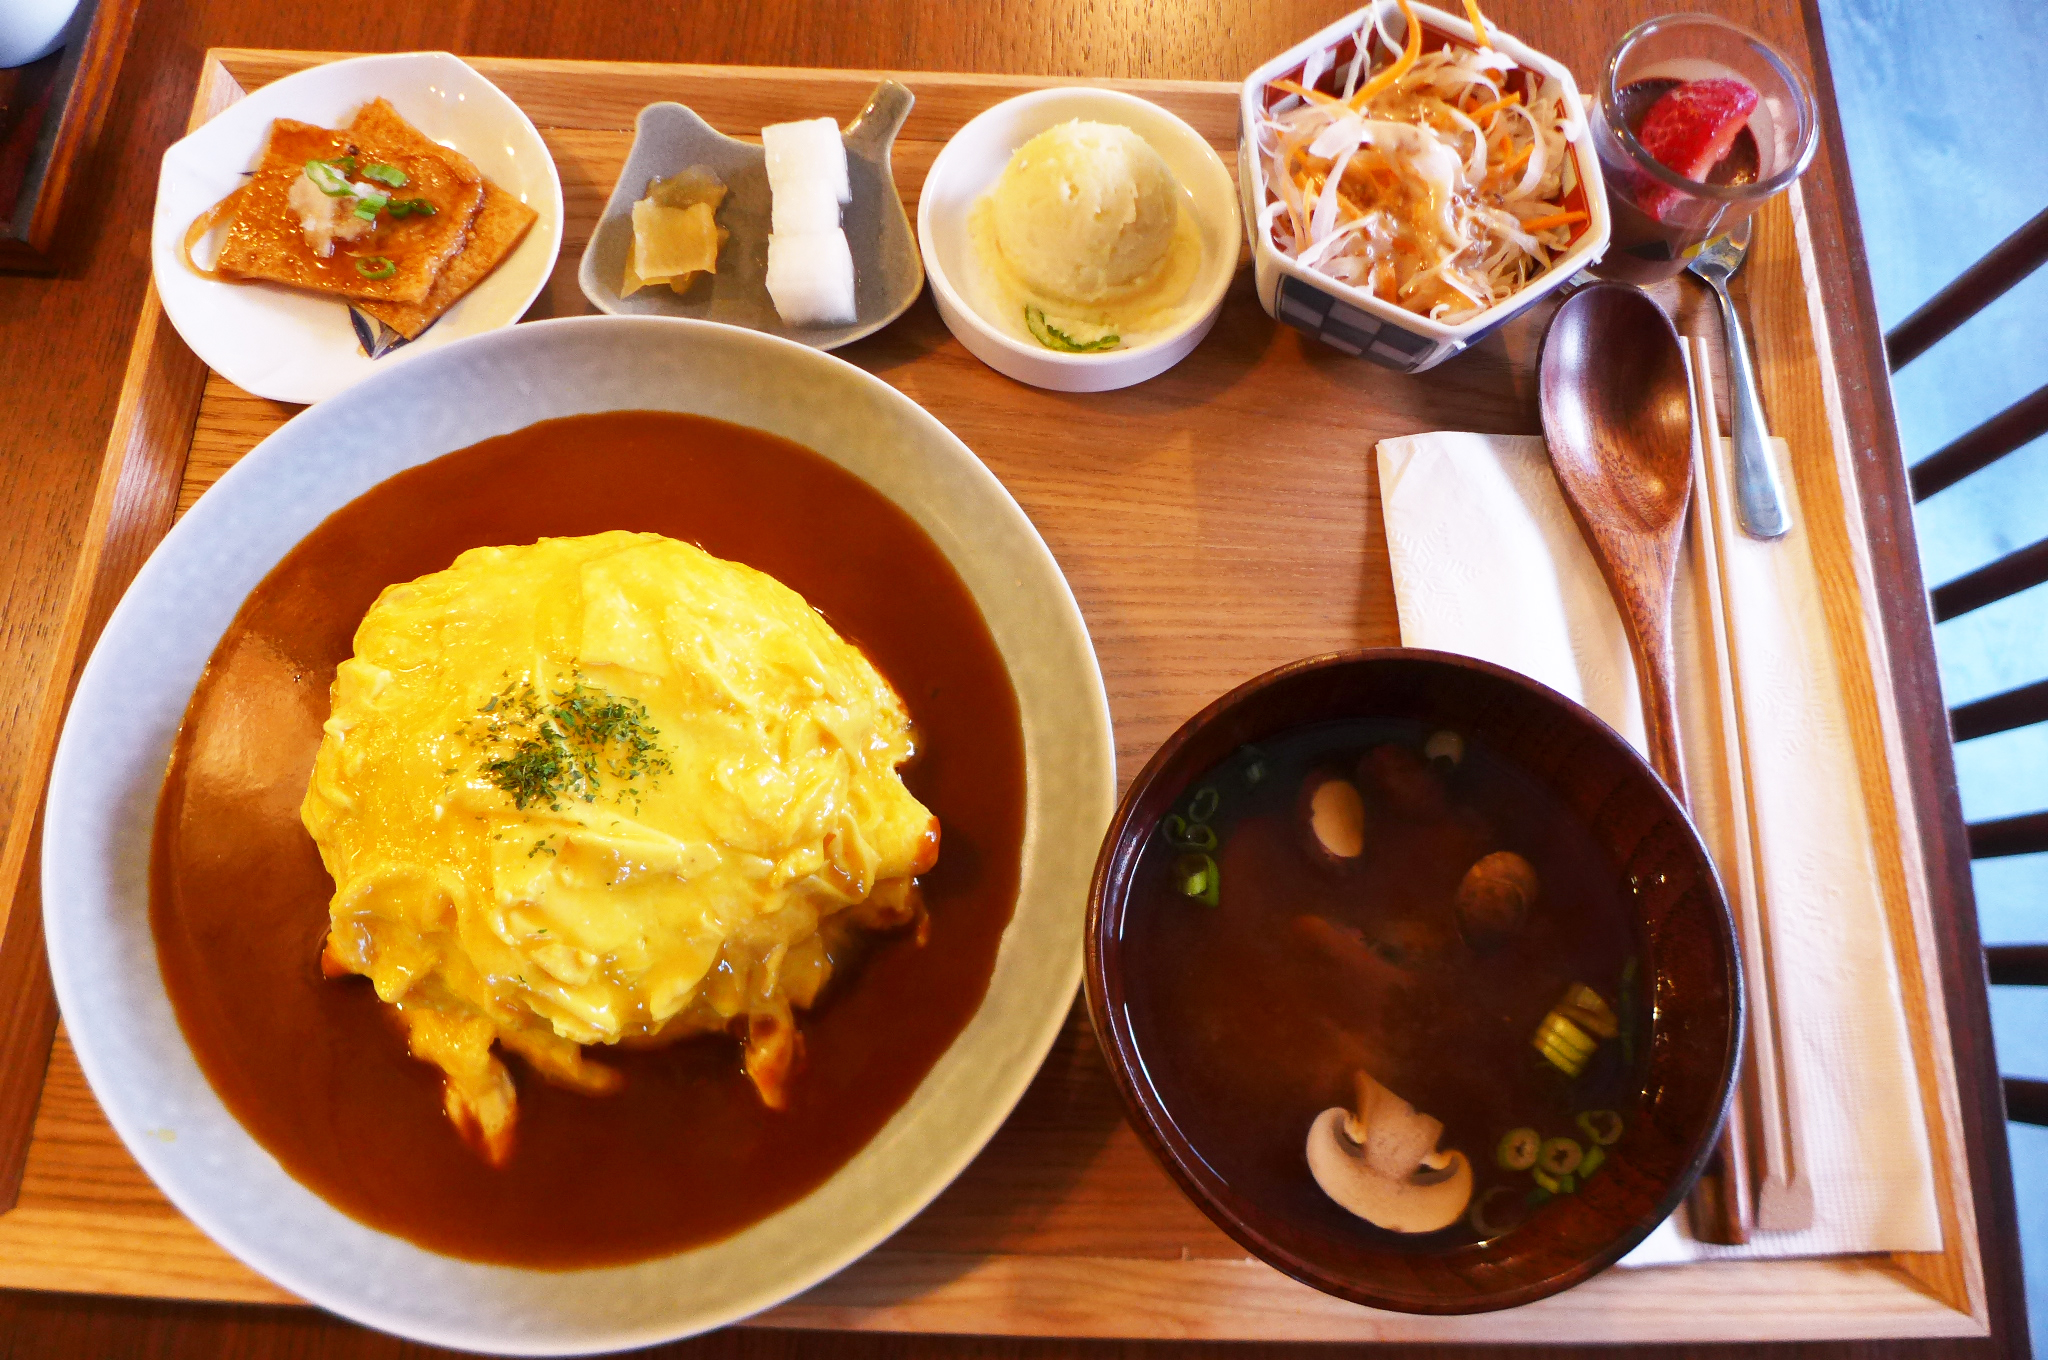 A tray is covered with small dishes, the largest of which is a very yellow omelet in a pool of brown gravy.